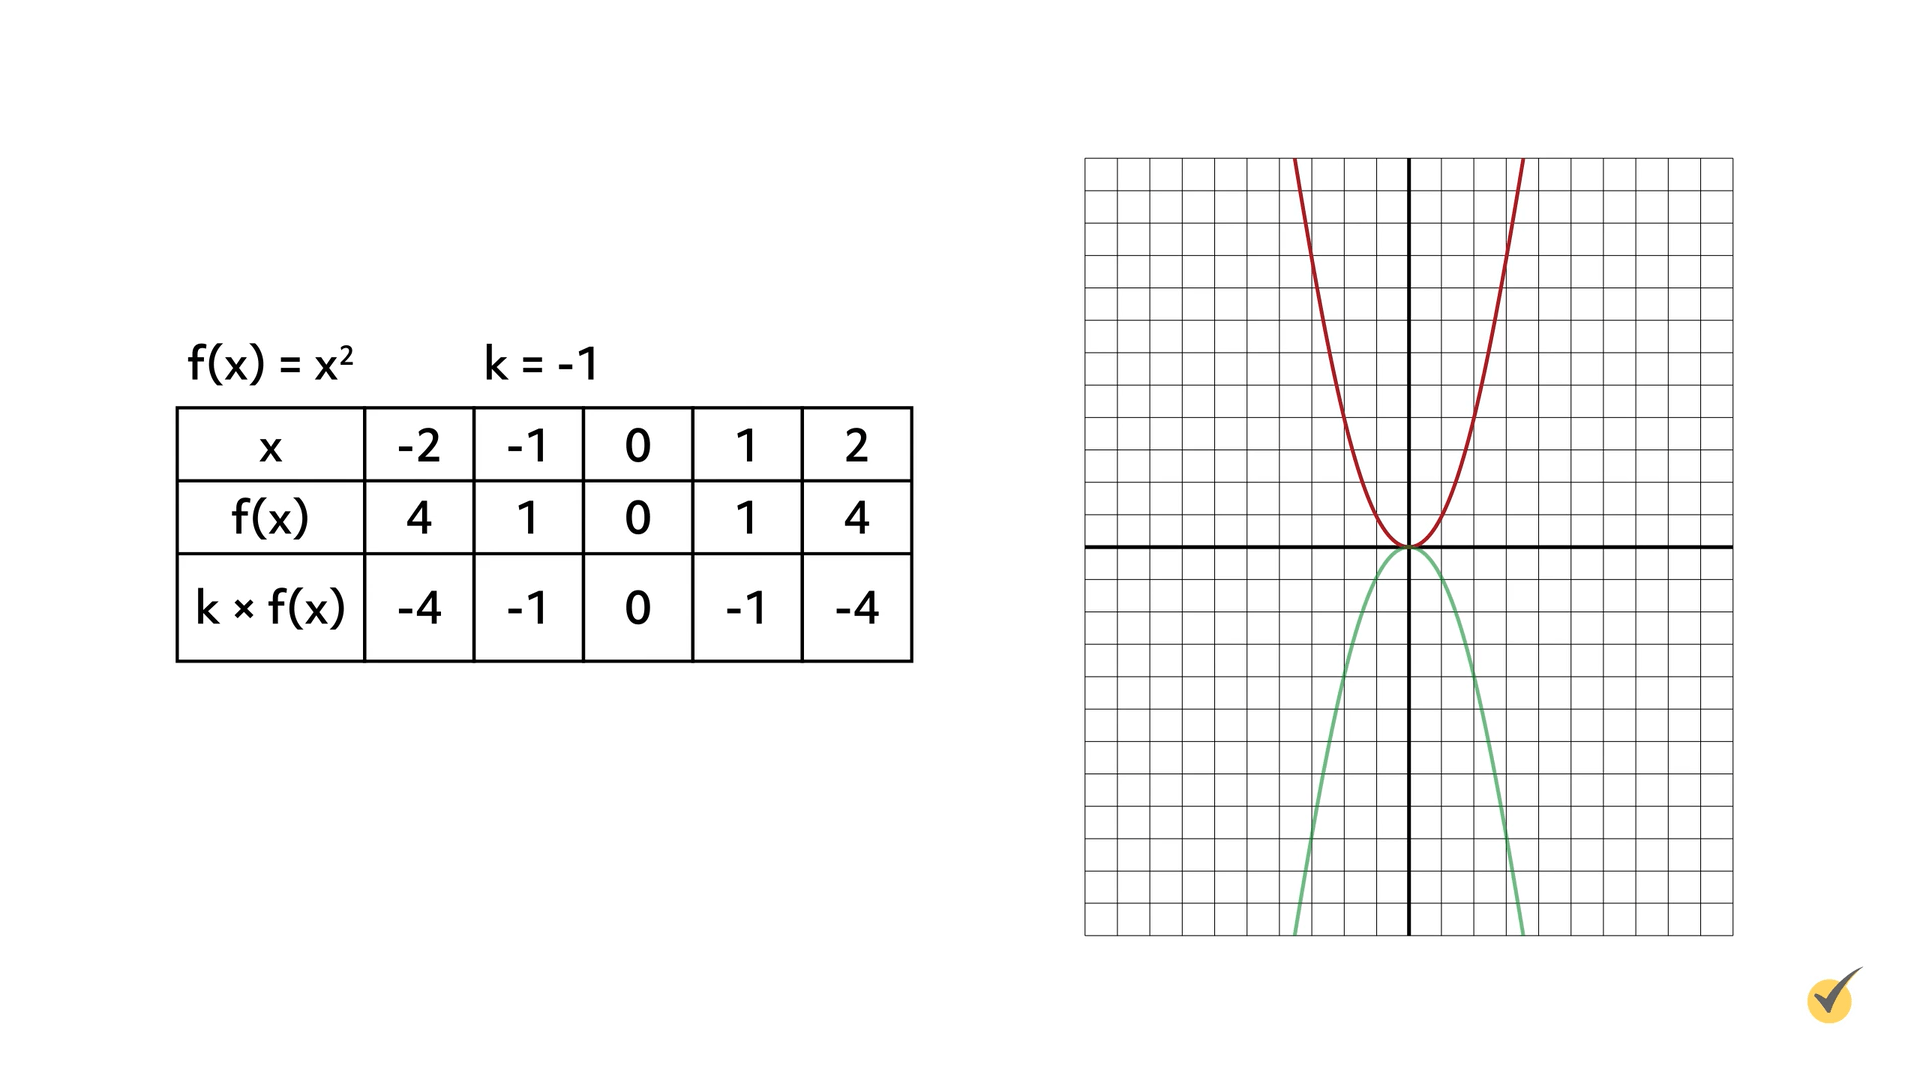 Image of f(x)=x^2 and K=-1 plotted on a graph.